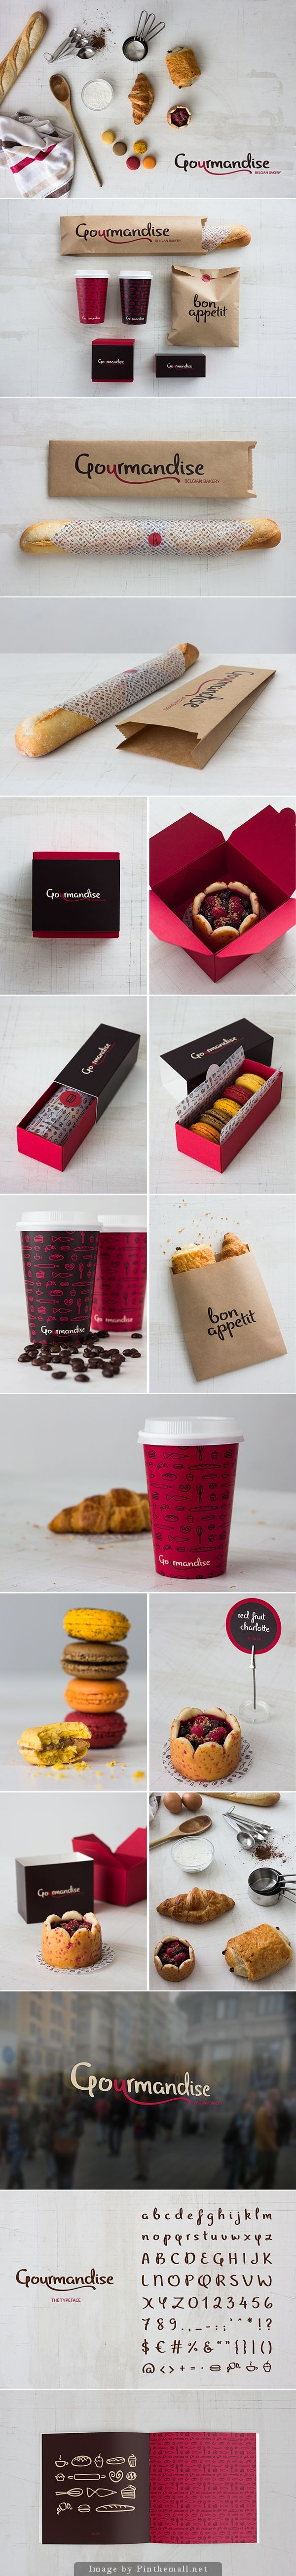 Gourmandise Belgian Bakery on Behance